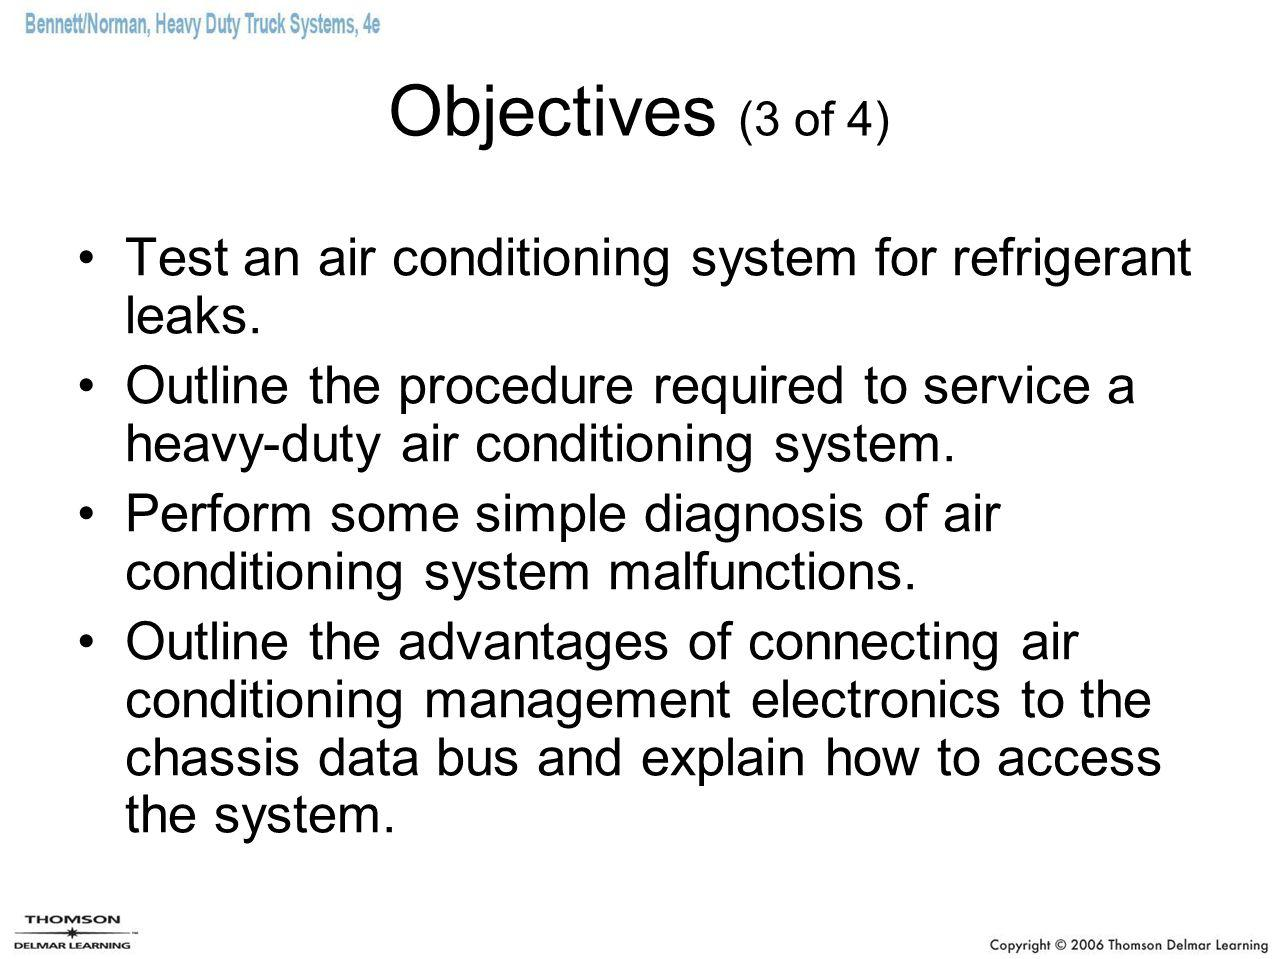 Objectives (3 of 4) Test an air conditioning system for refrigerant leaks. Outline the procedure required to service a heavy-duty air conditioning sys